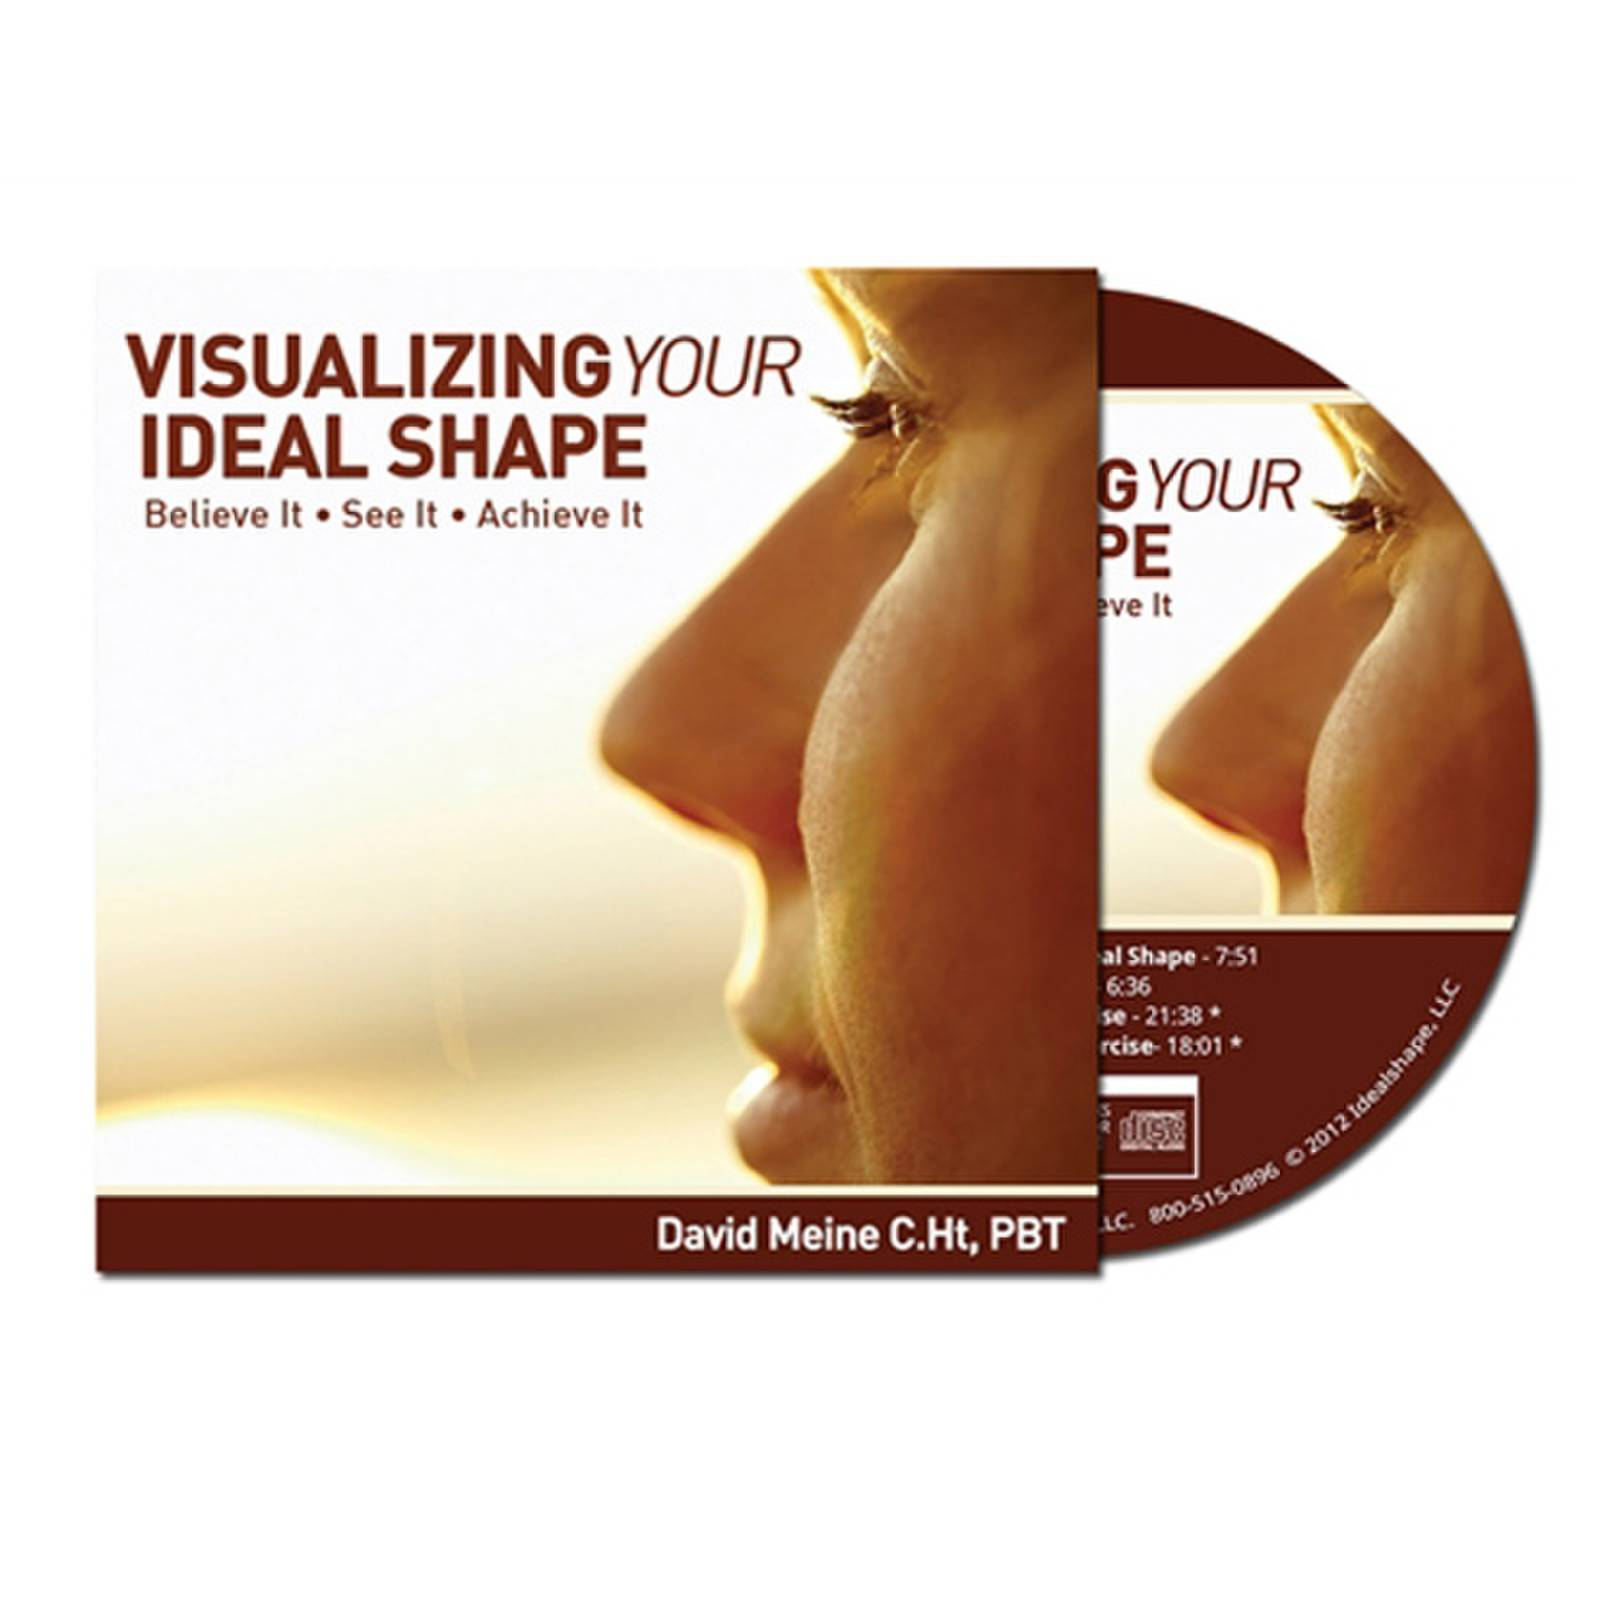 IdealShape Visualizing Your Ideal Shape